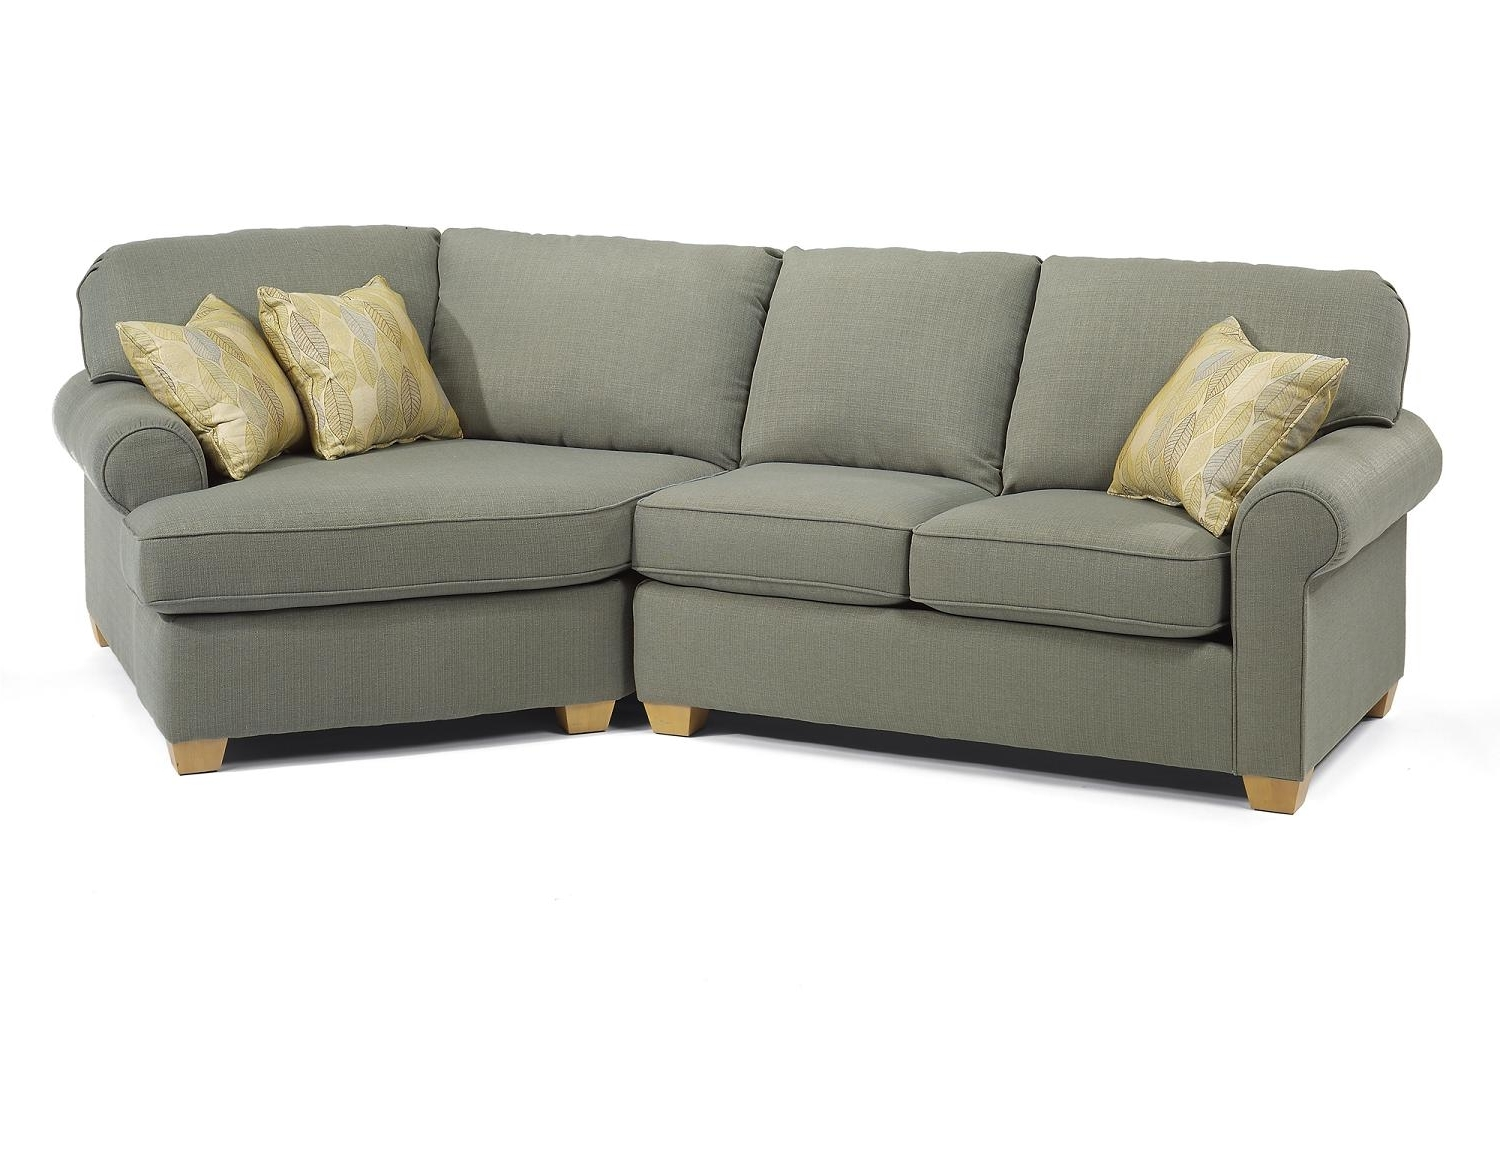 Stylish Small Sectional Sofa With Chaise — Fabrizio Design Within Well Known Small Sectional Sofas With Chaise (View 8 of 15)